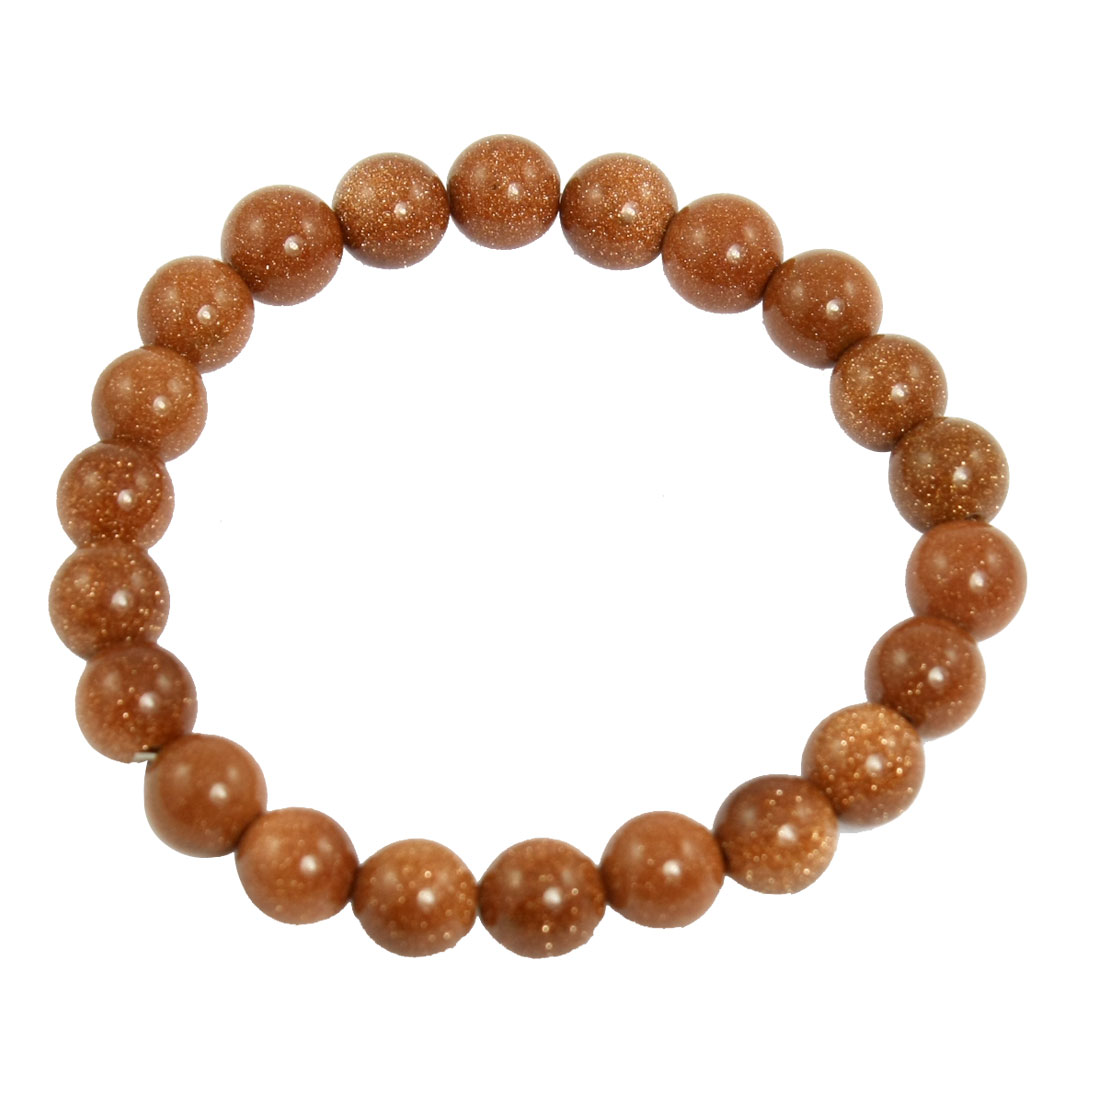 Amber Synthetic Gem Stone Round Beads Elastic String Bracelet Hand Chain